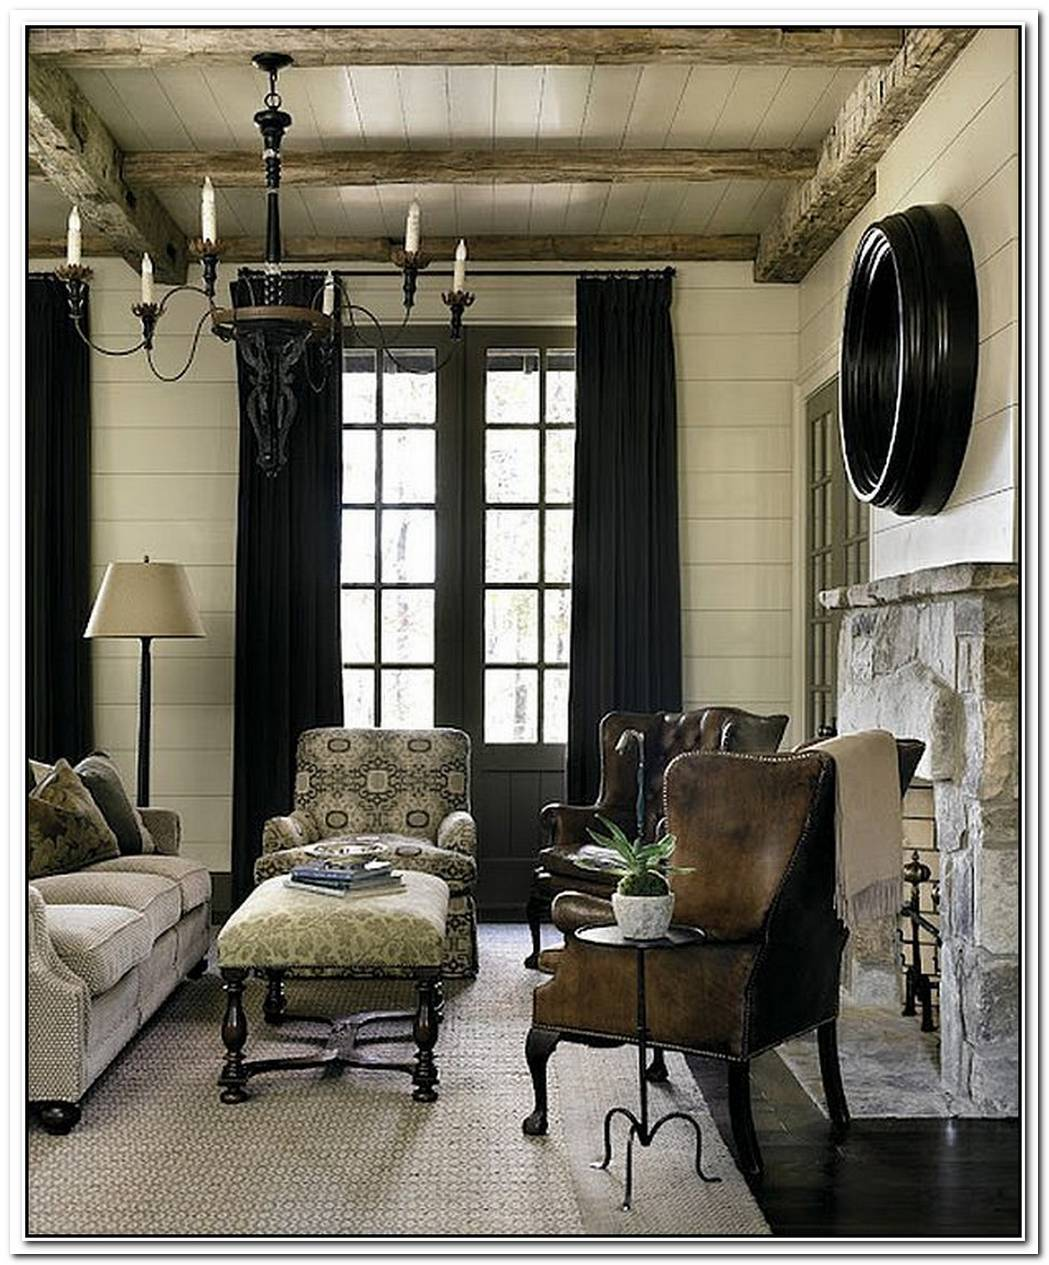 Refined Rustic LivingCountry Chic Mountain Retreat